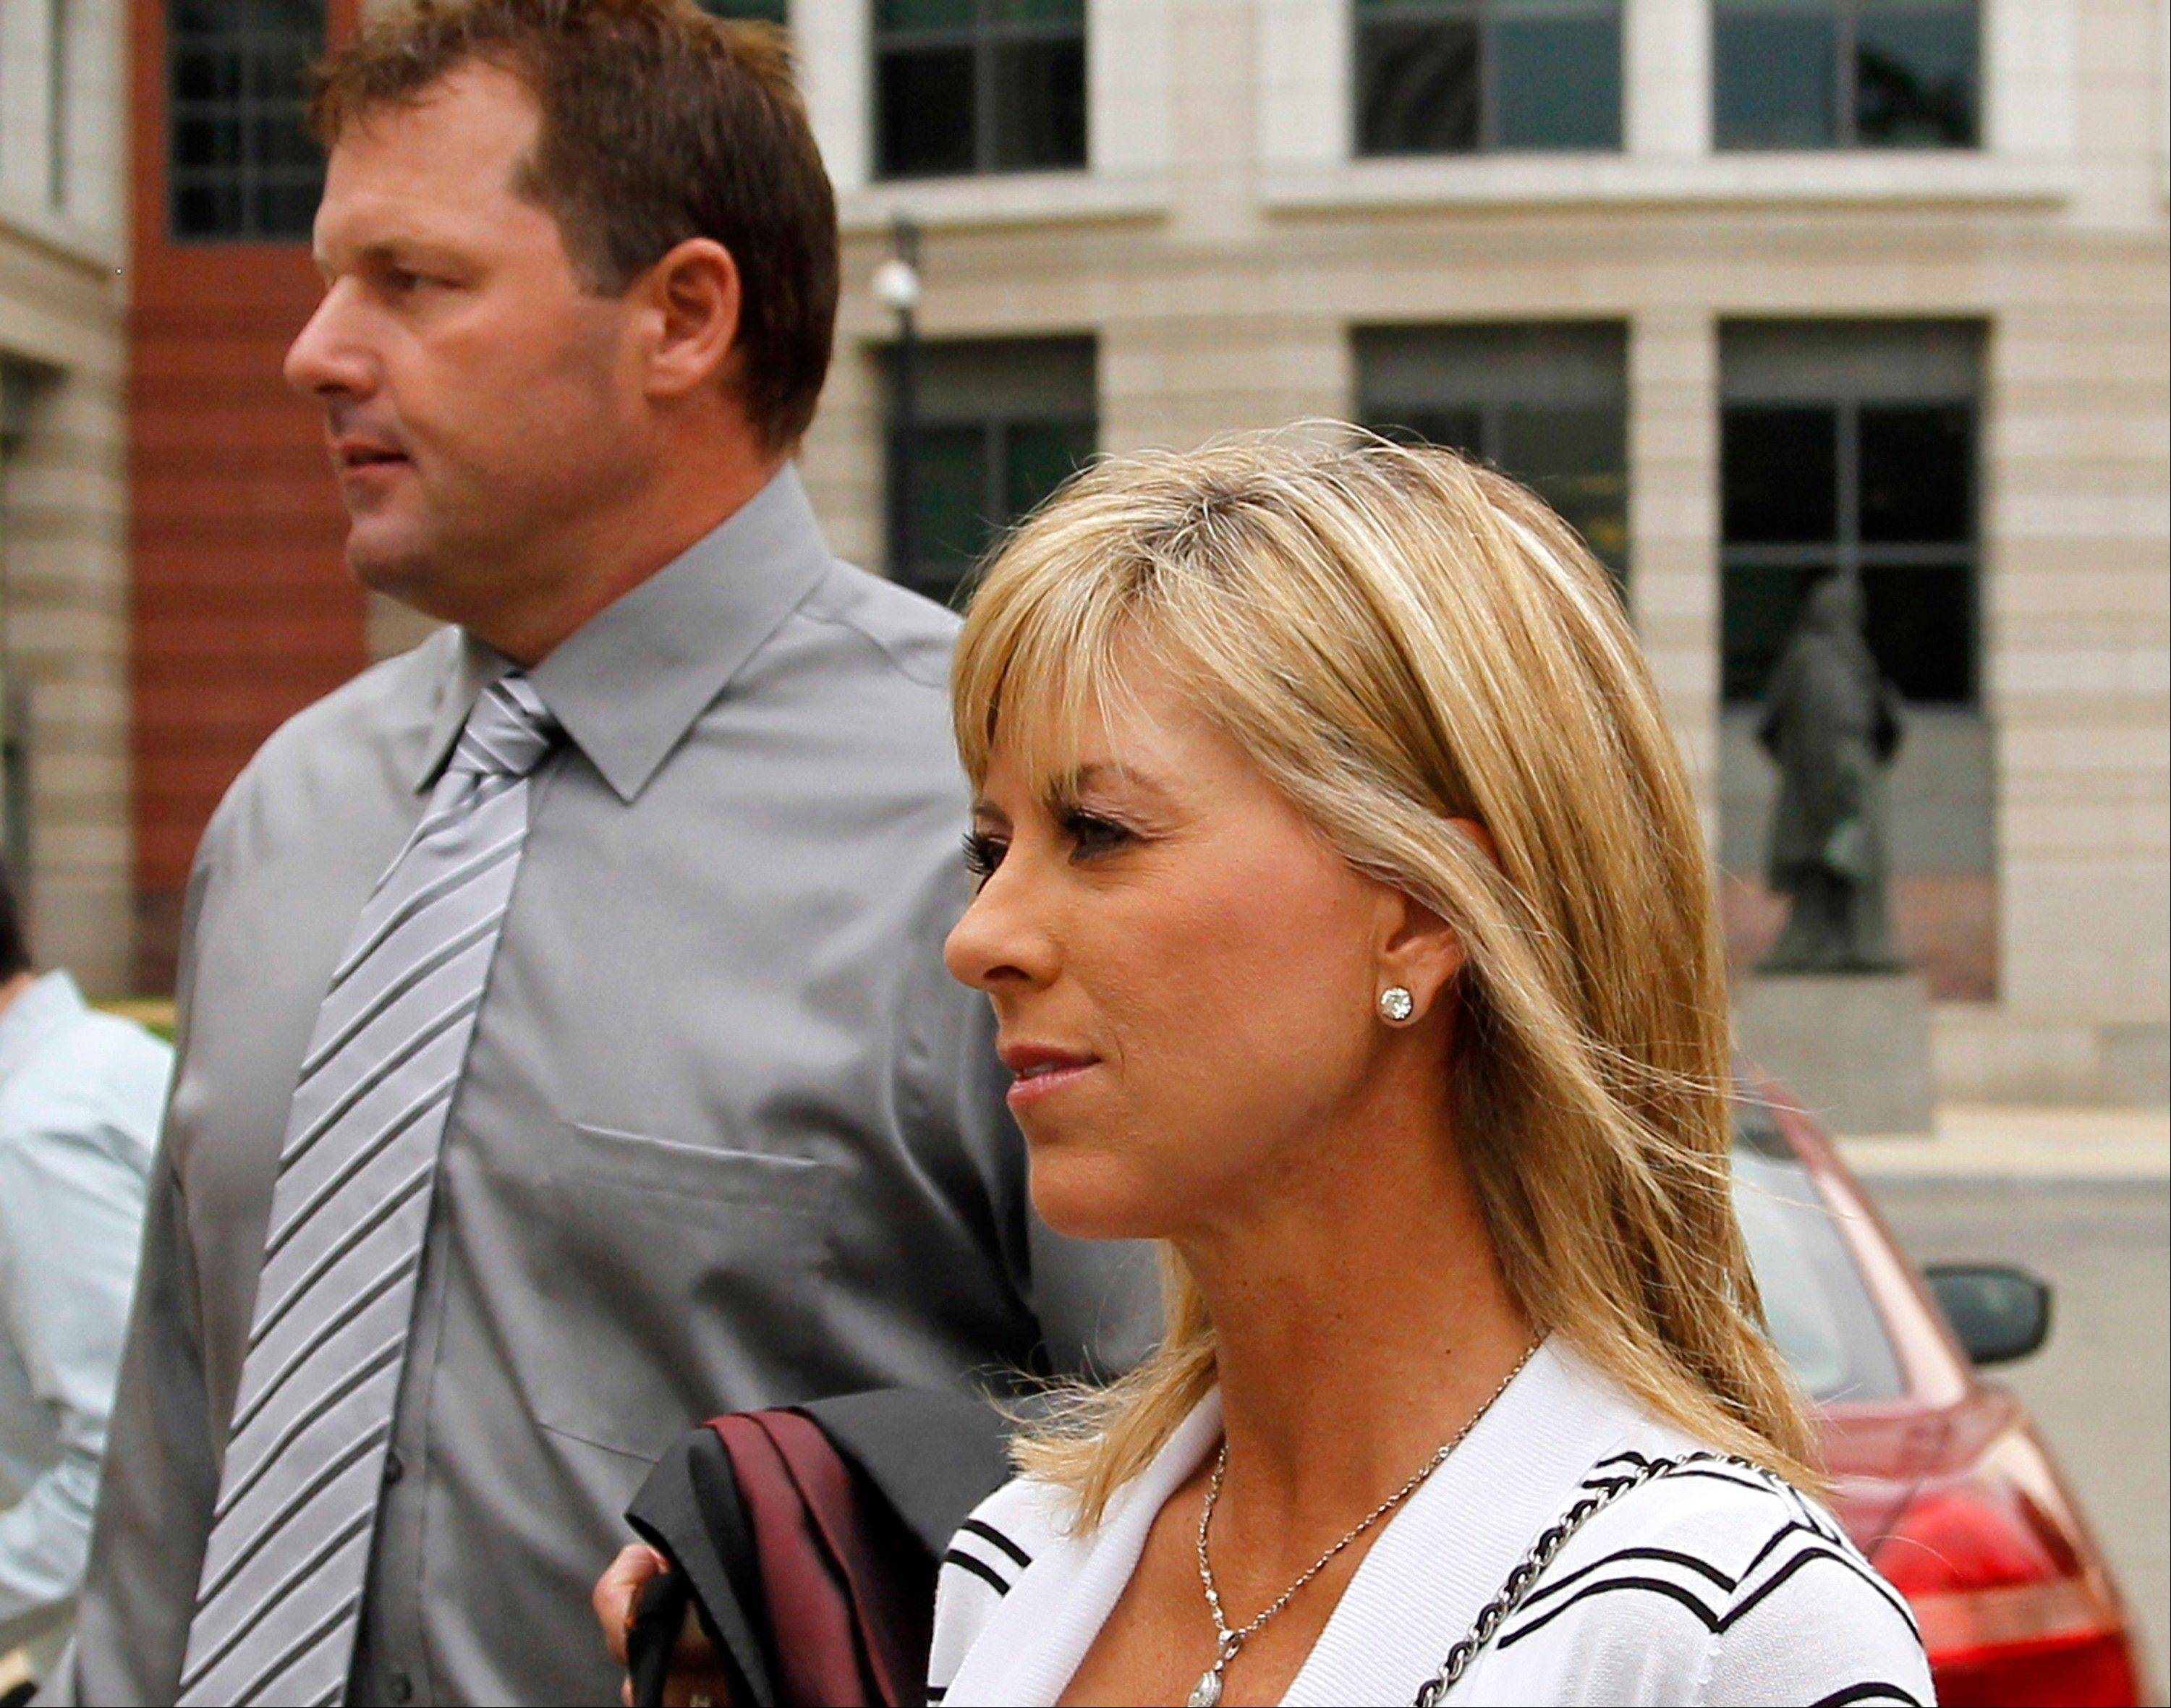 Debbie Clemens testified Friday that her husband, Roger Clemens, was not present when she received a shot of human growth hormone from Clemens' strength coach -- testimony that contradicts the star pitcher's chief accuser in the perjury trial.